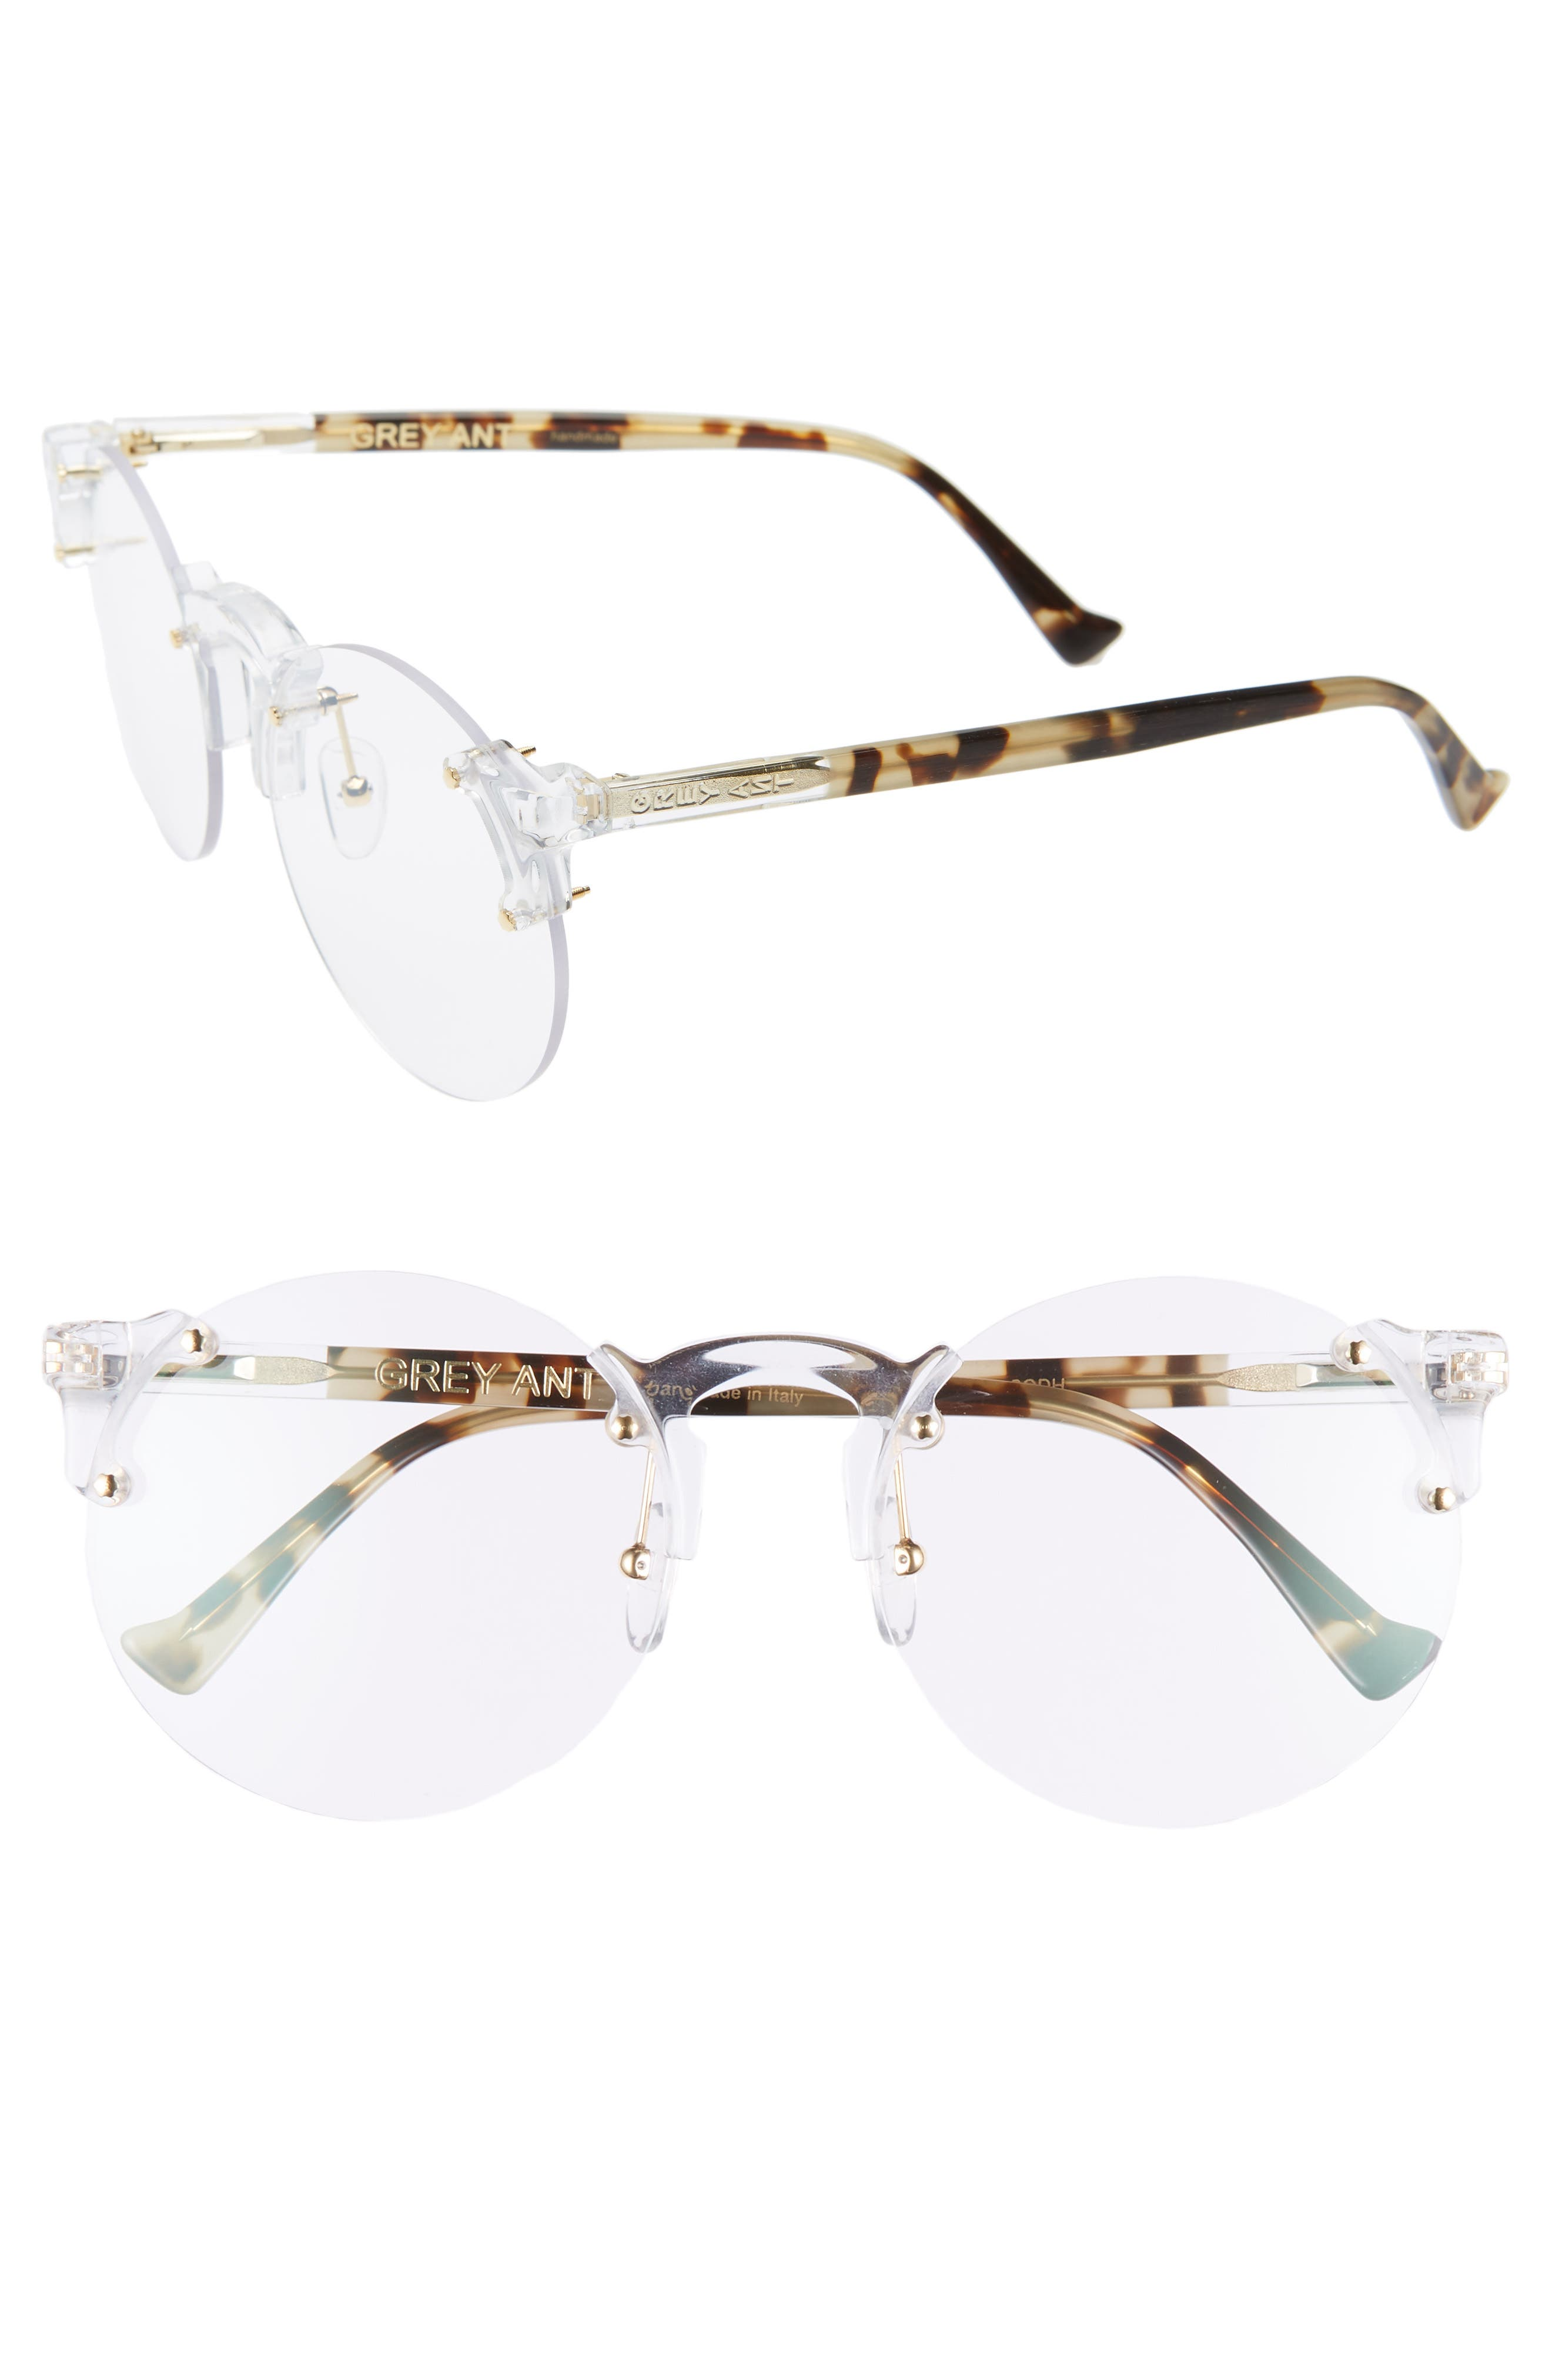 Solo 57mm Rimless Optical Glasses,                             Main thumbnail 1, color,                             CLEAR/ GOLD